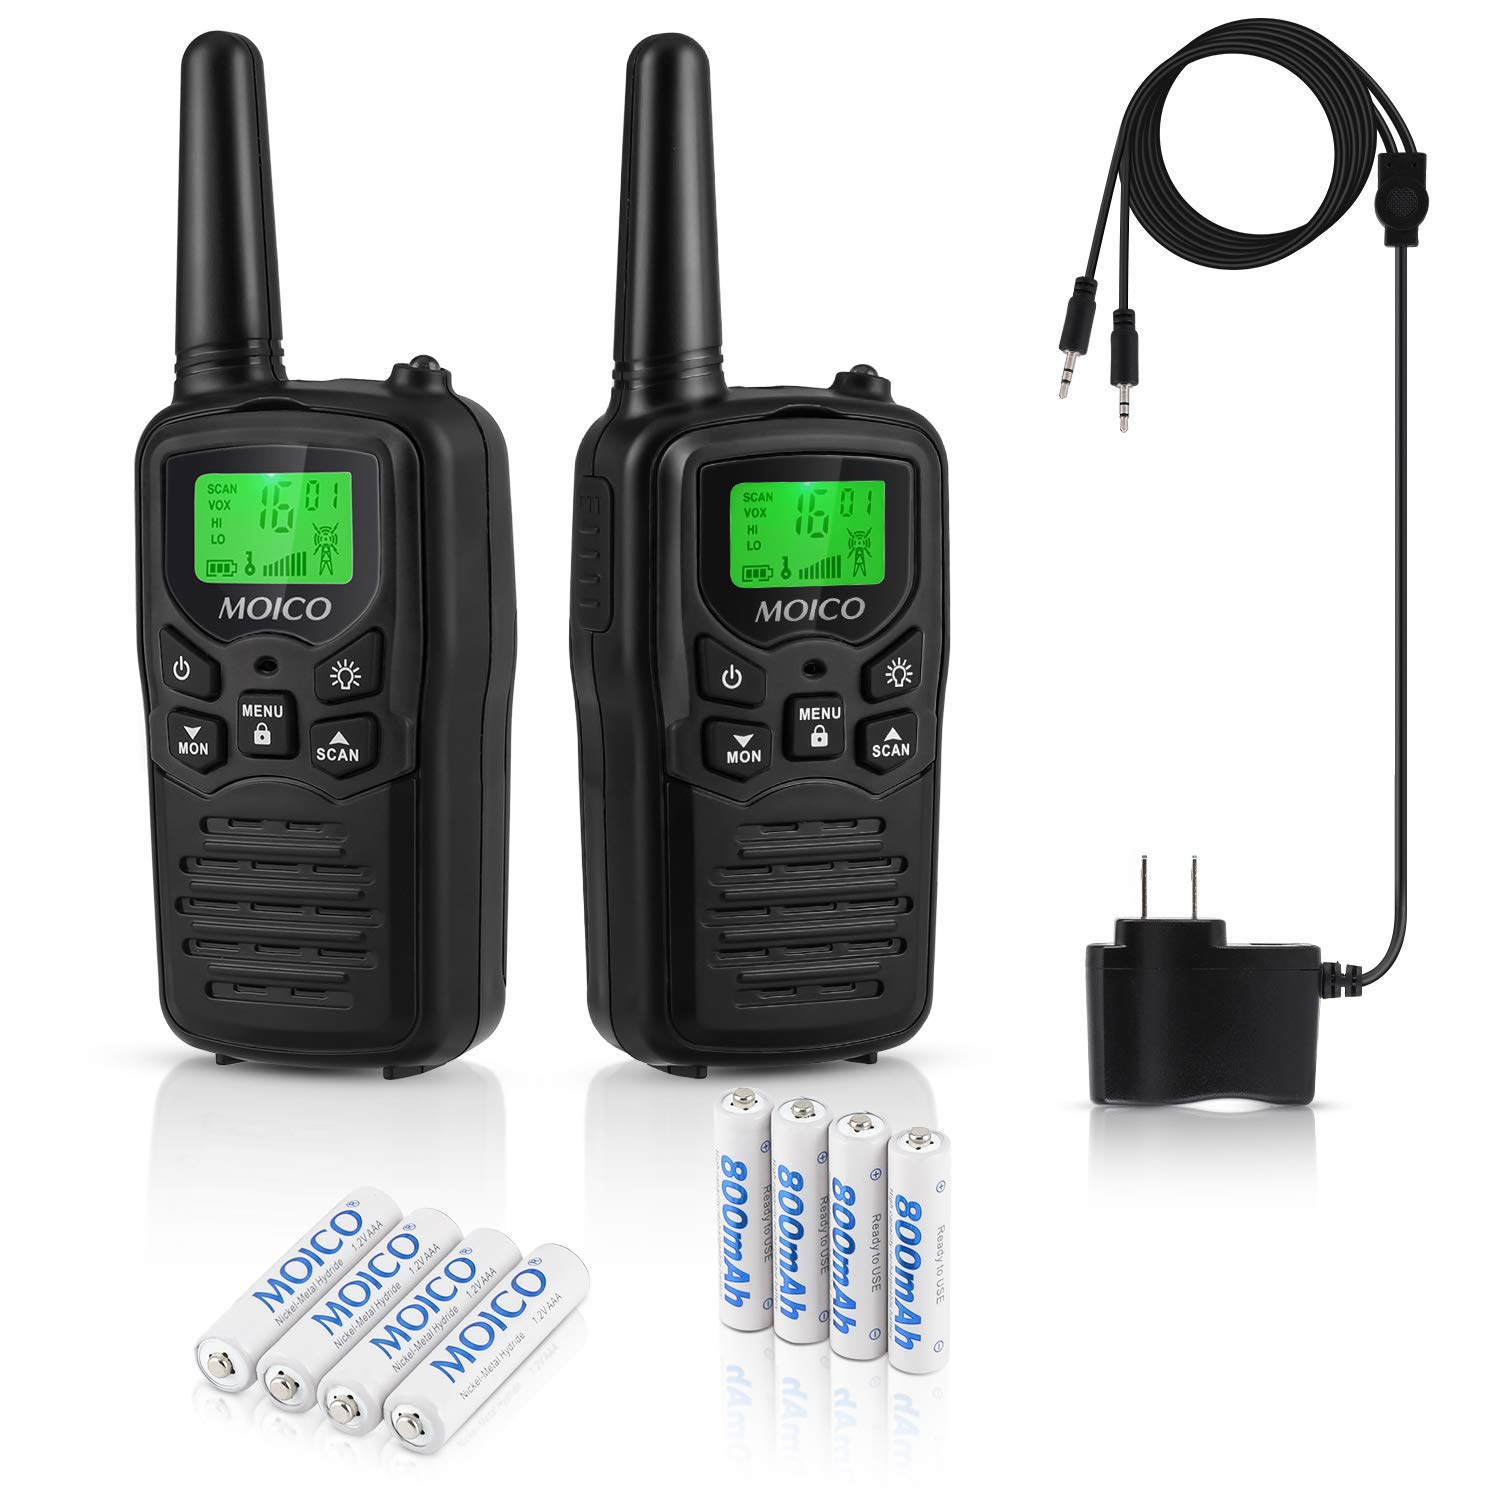 Professional Rechargeable Walkie Talkies,MOICO Long Range Two Way Radios for Adults up to 5 Miles in Open Area,Handheld Talkies Talky with 22Channels FRS/GMRS VOX Scan LCD Display LED Flashlight Black by MOICO